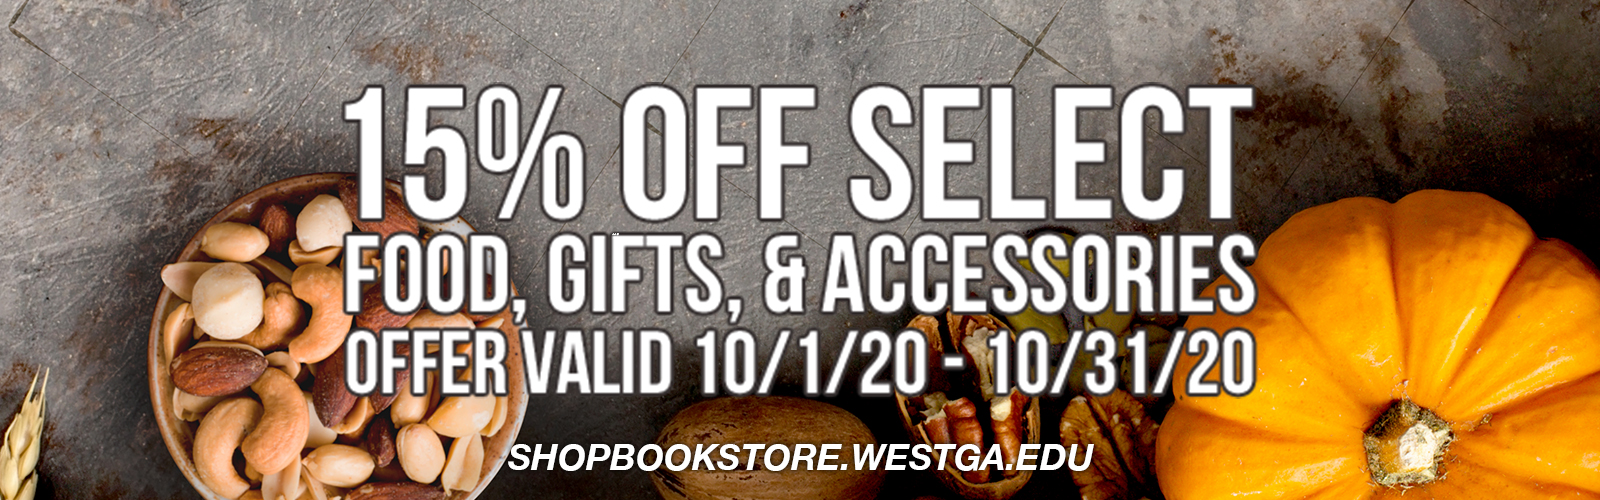 15% off select food, gifts, and accessories at shopbookstore.westga.edu